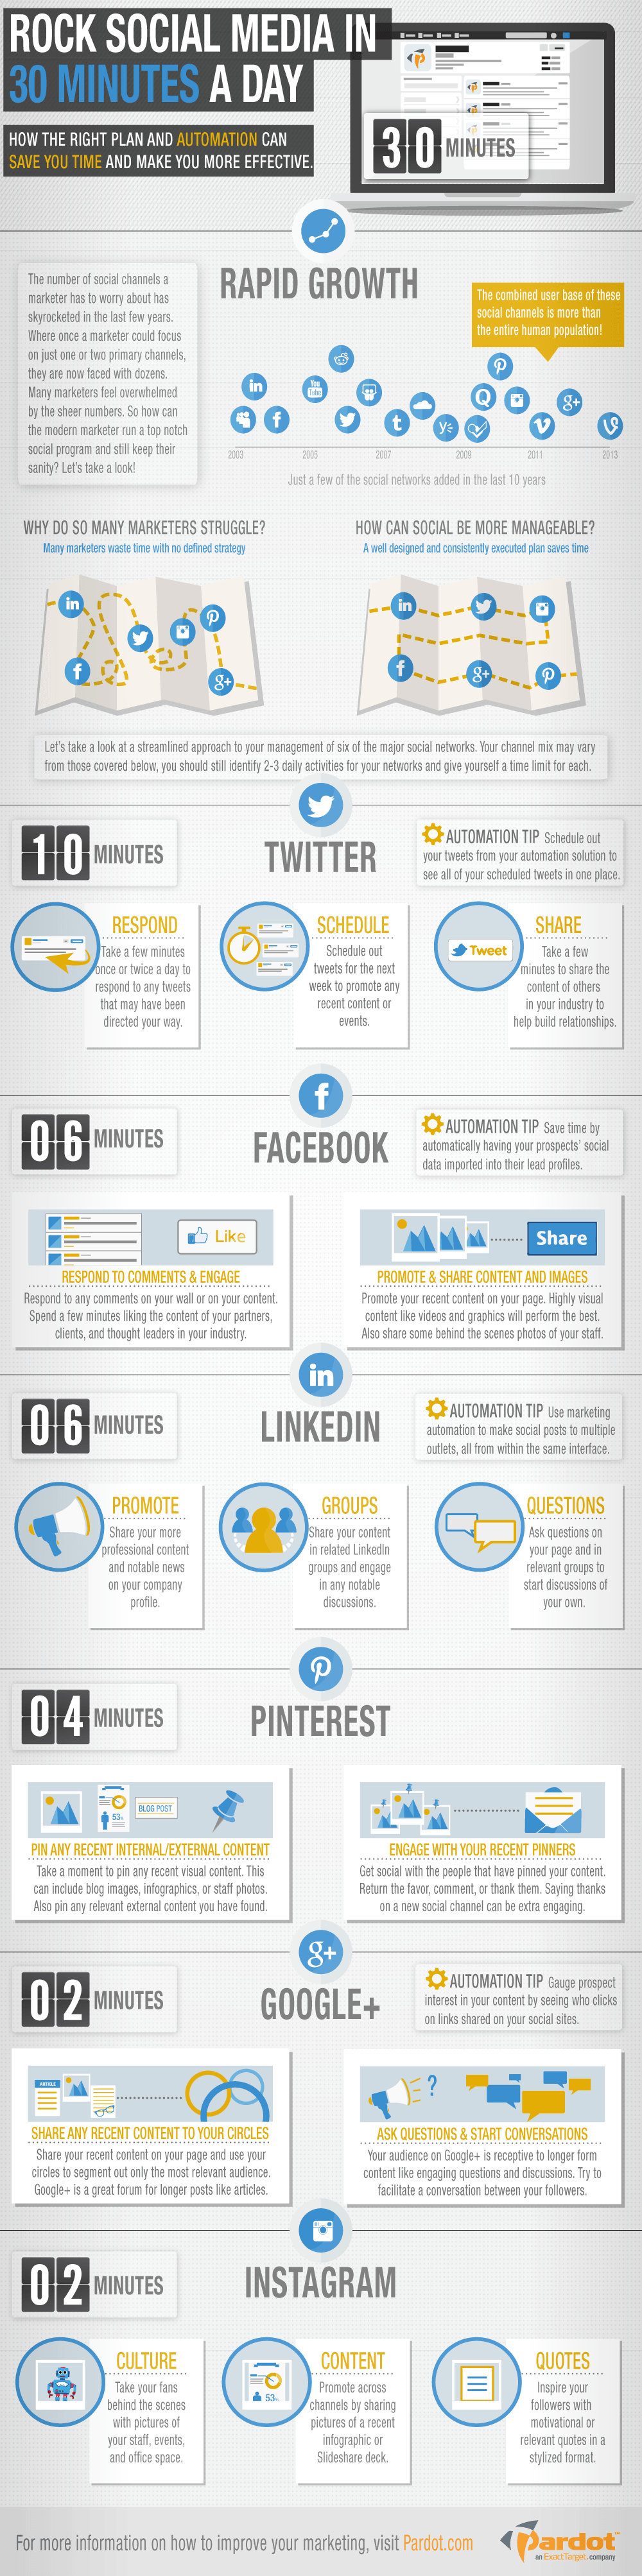 social-media-marketing-done-30-minutes-infographic-image-compressed.png